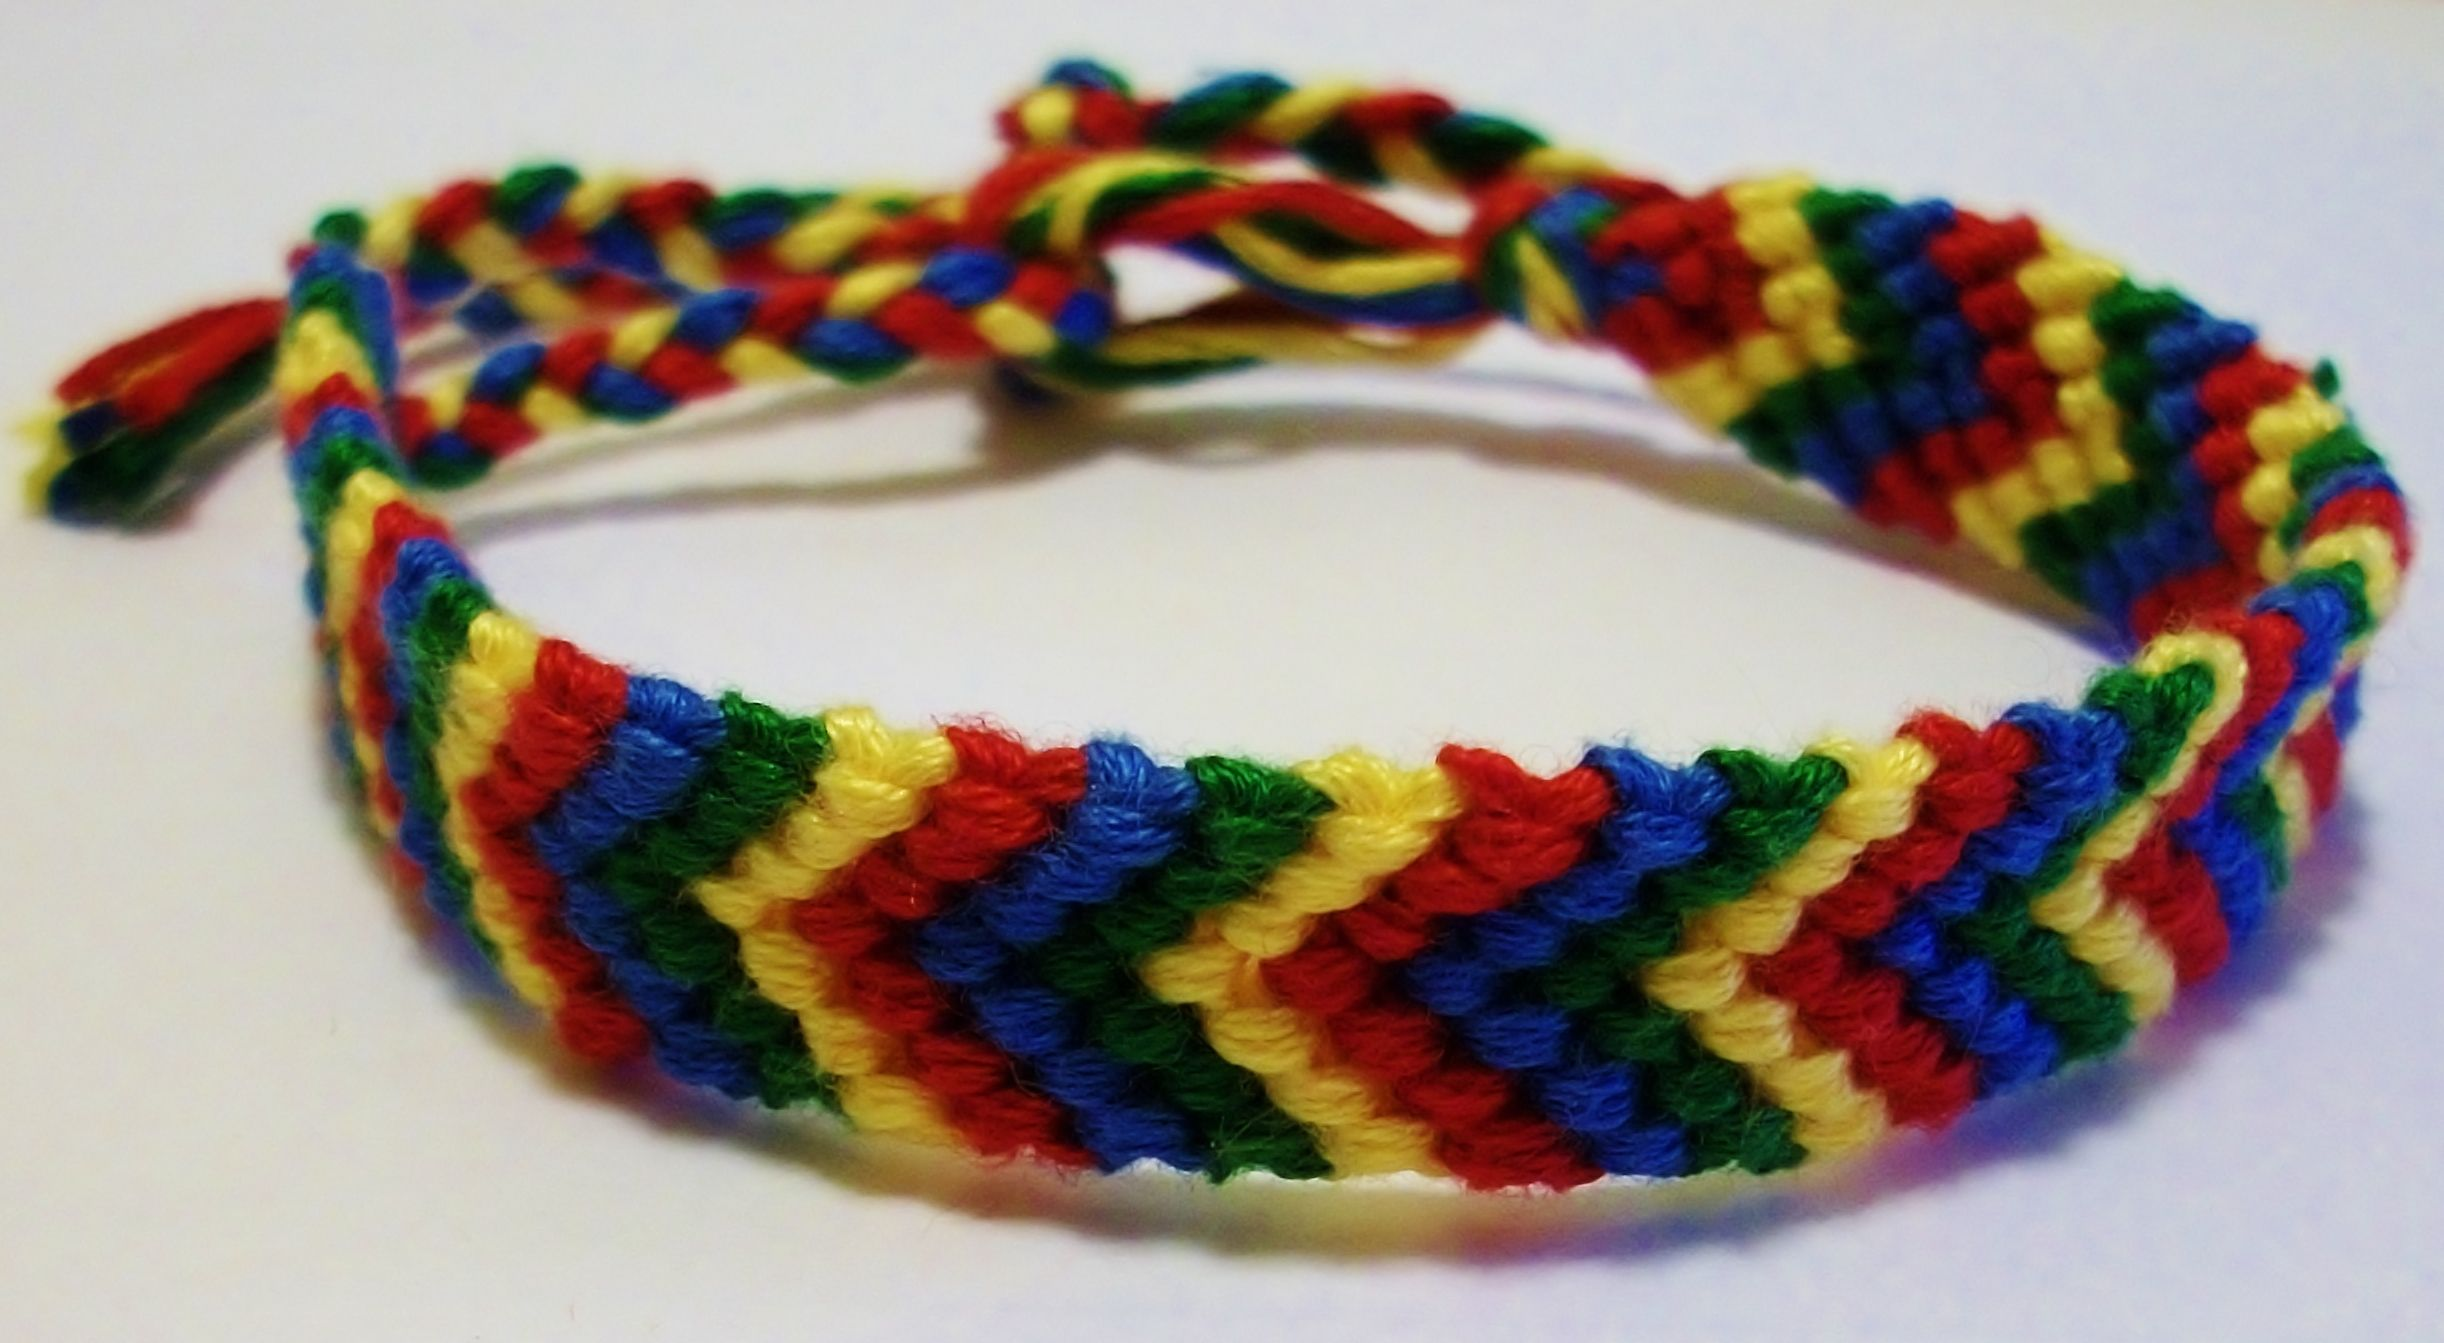 This chevron pattern friendship bracelet was made using red, yellow, green and blue embroidery floss. The length of the knotted area is 6 inches. The length of the entire bracelet is a little over 10 inches.